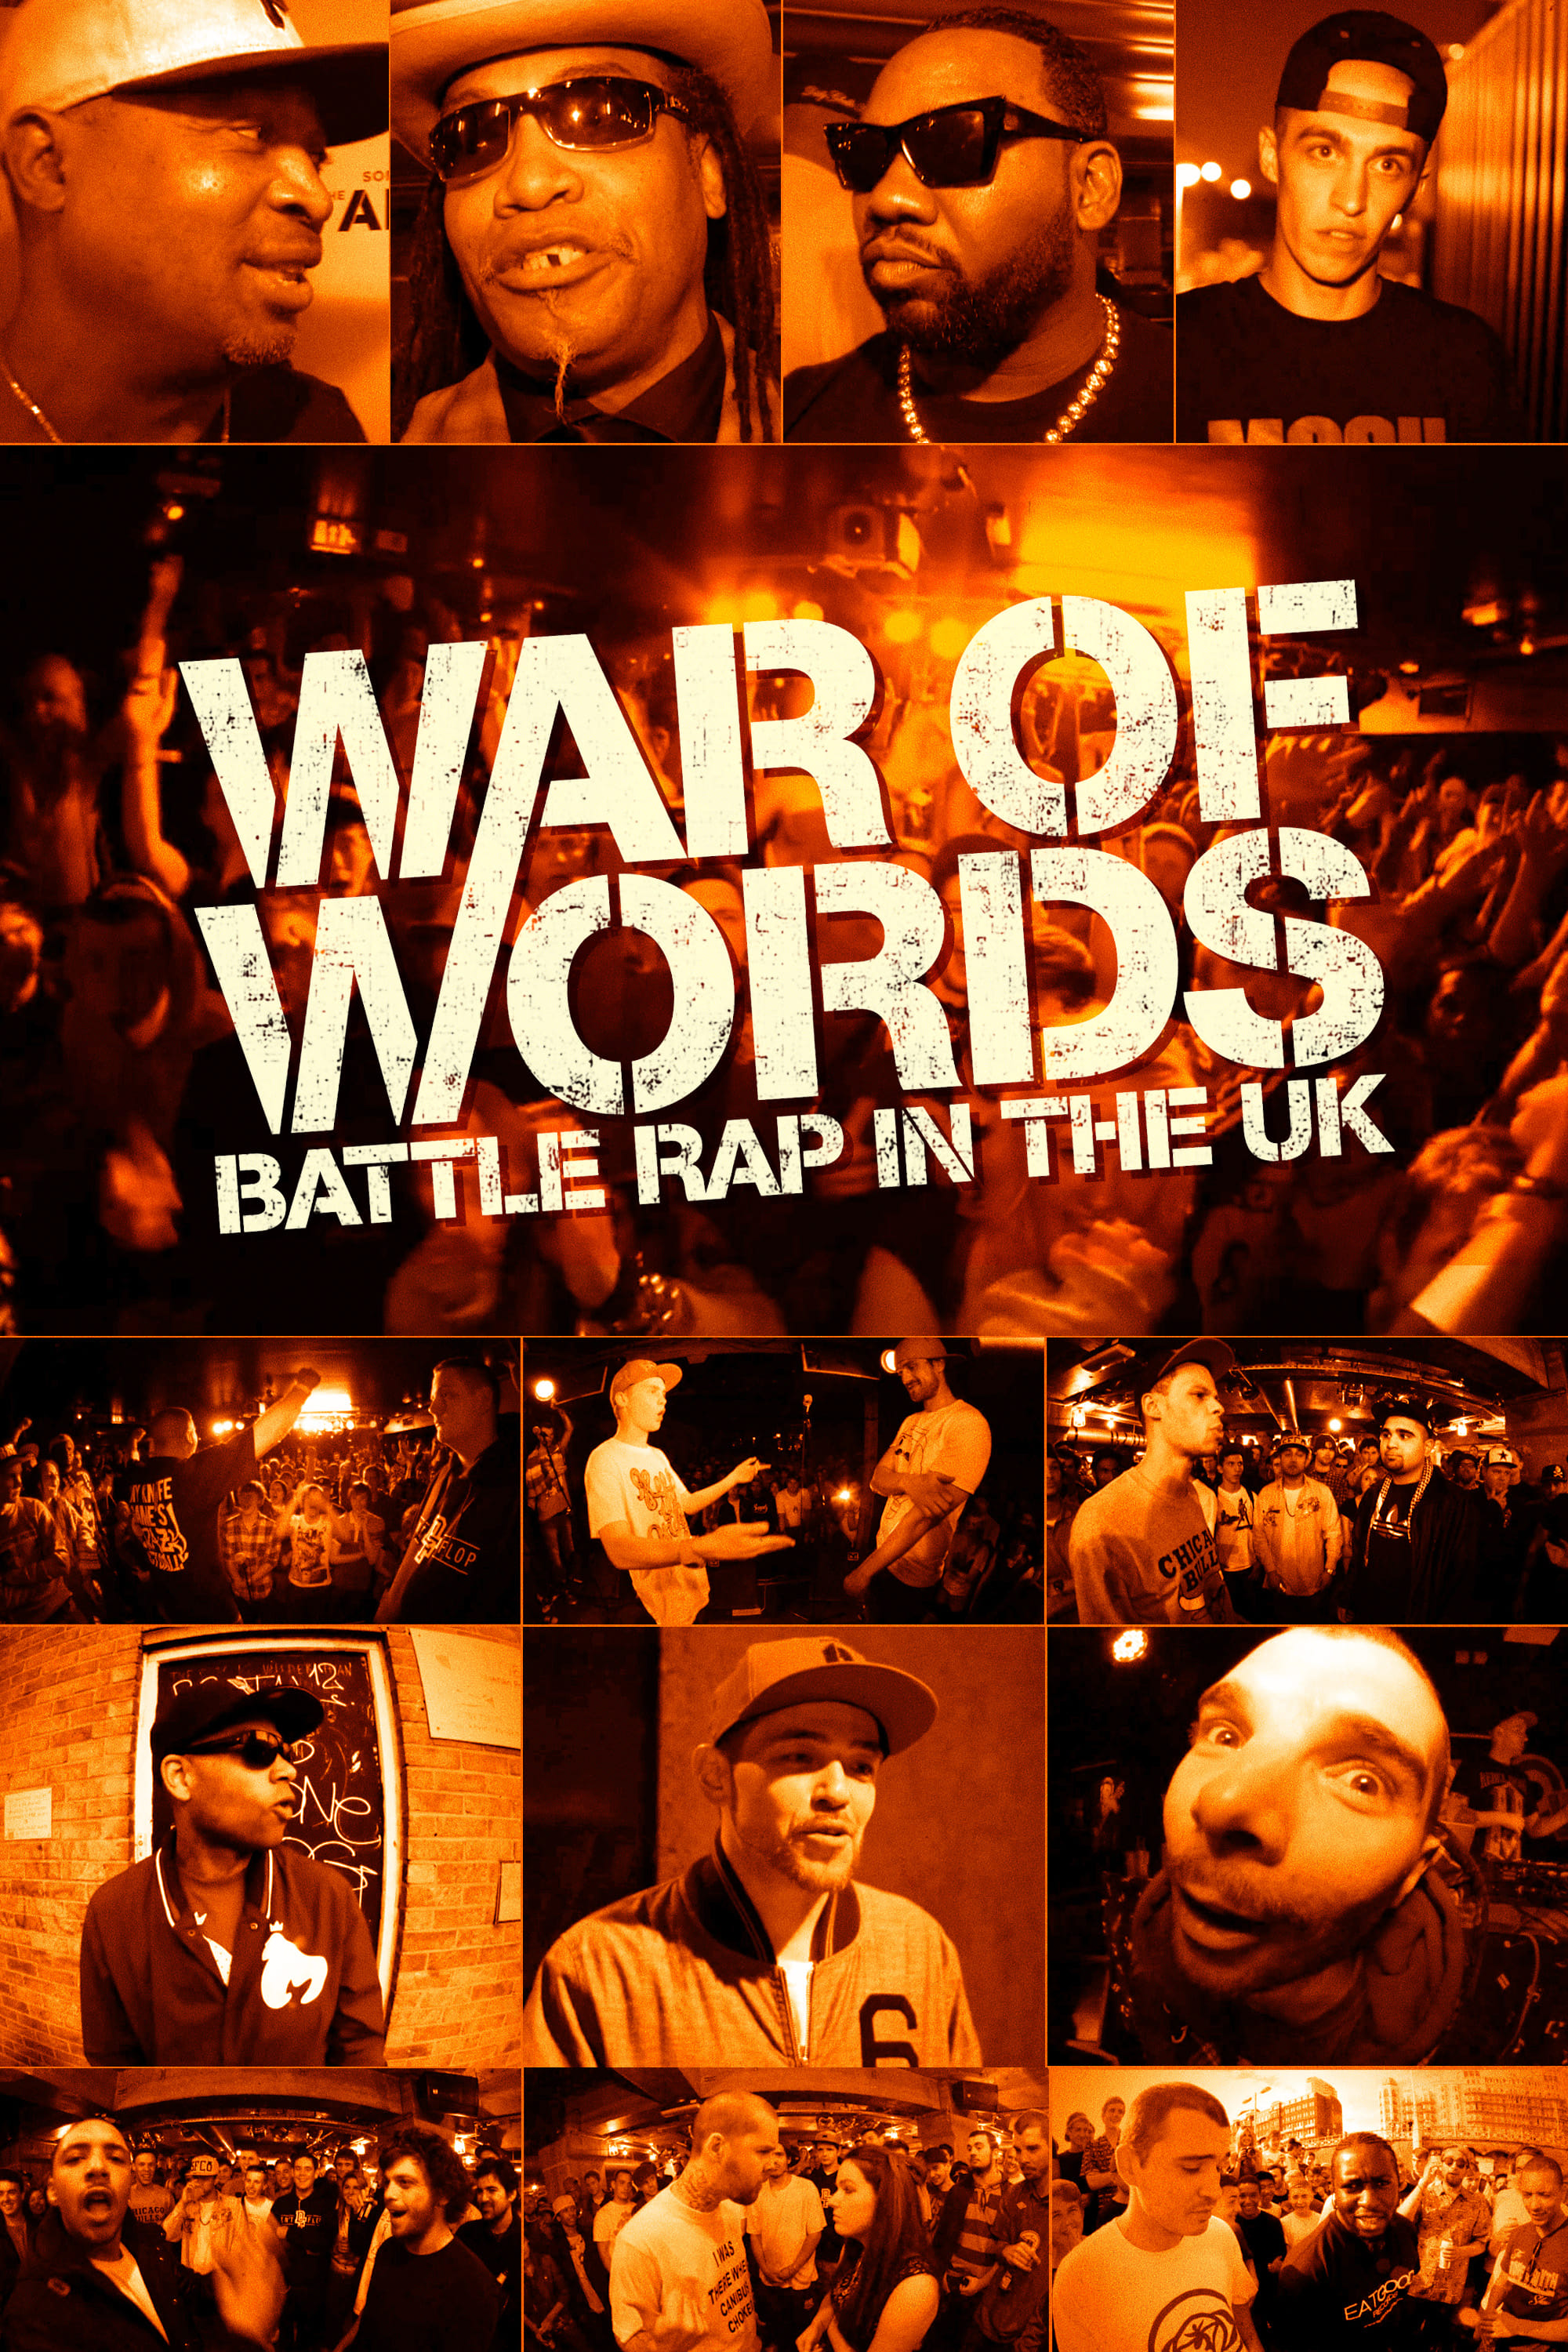 War of Words: Battle Rap in the UK